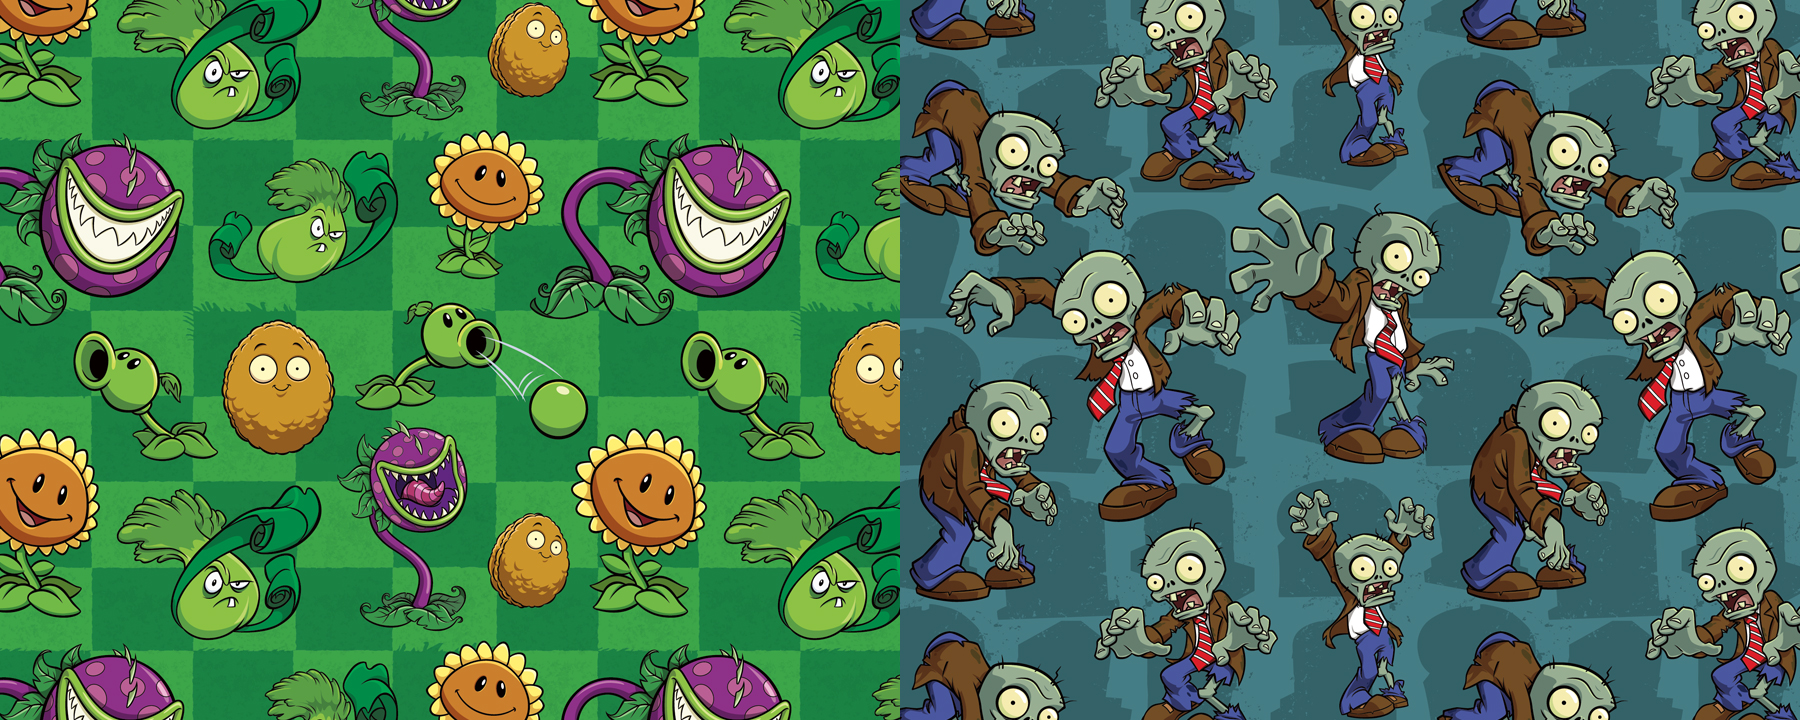 Plants vs. Zombies Style Guide Design - Thumb 7